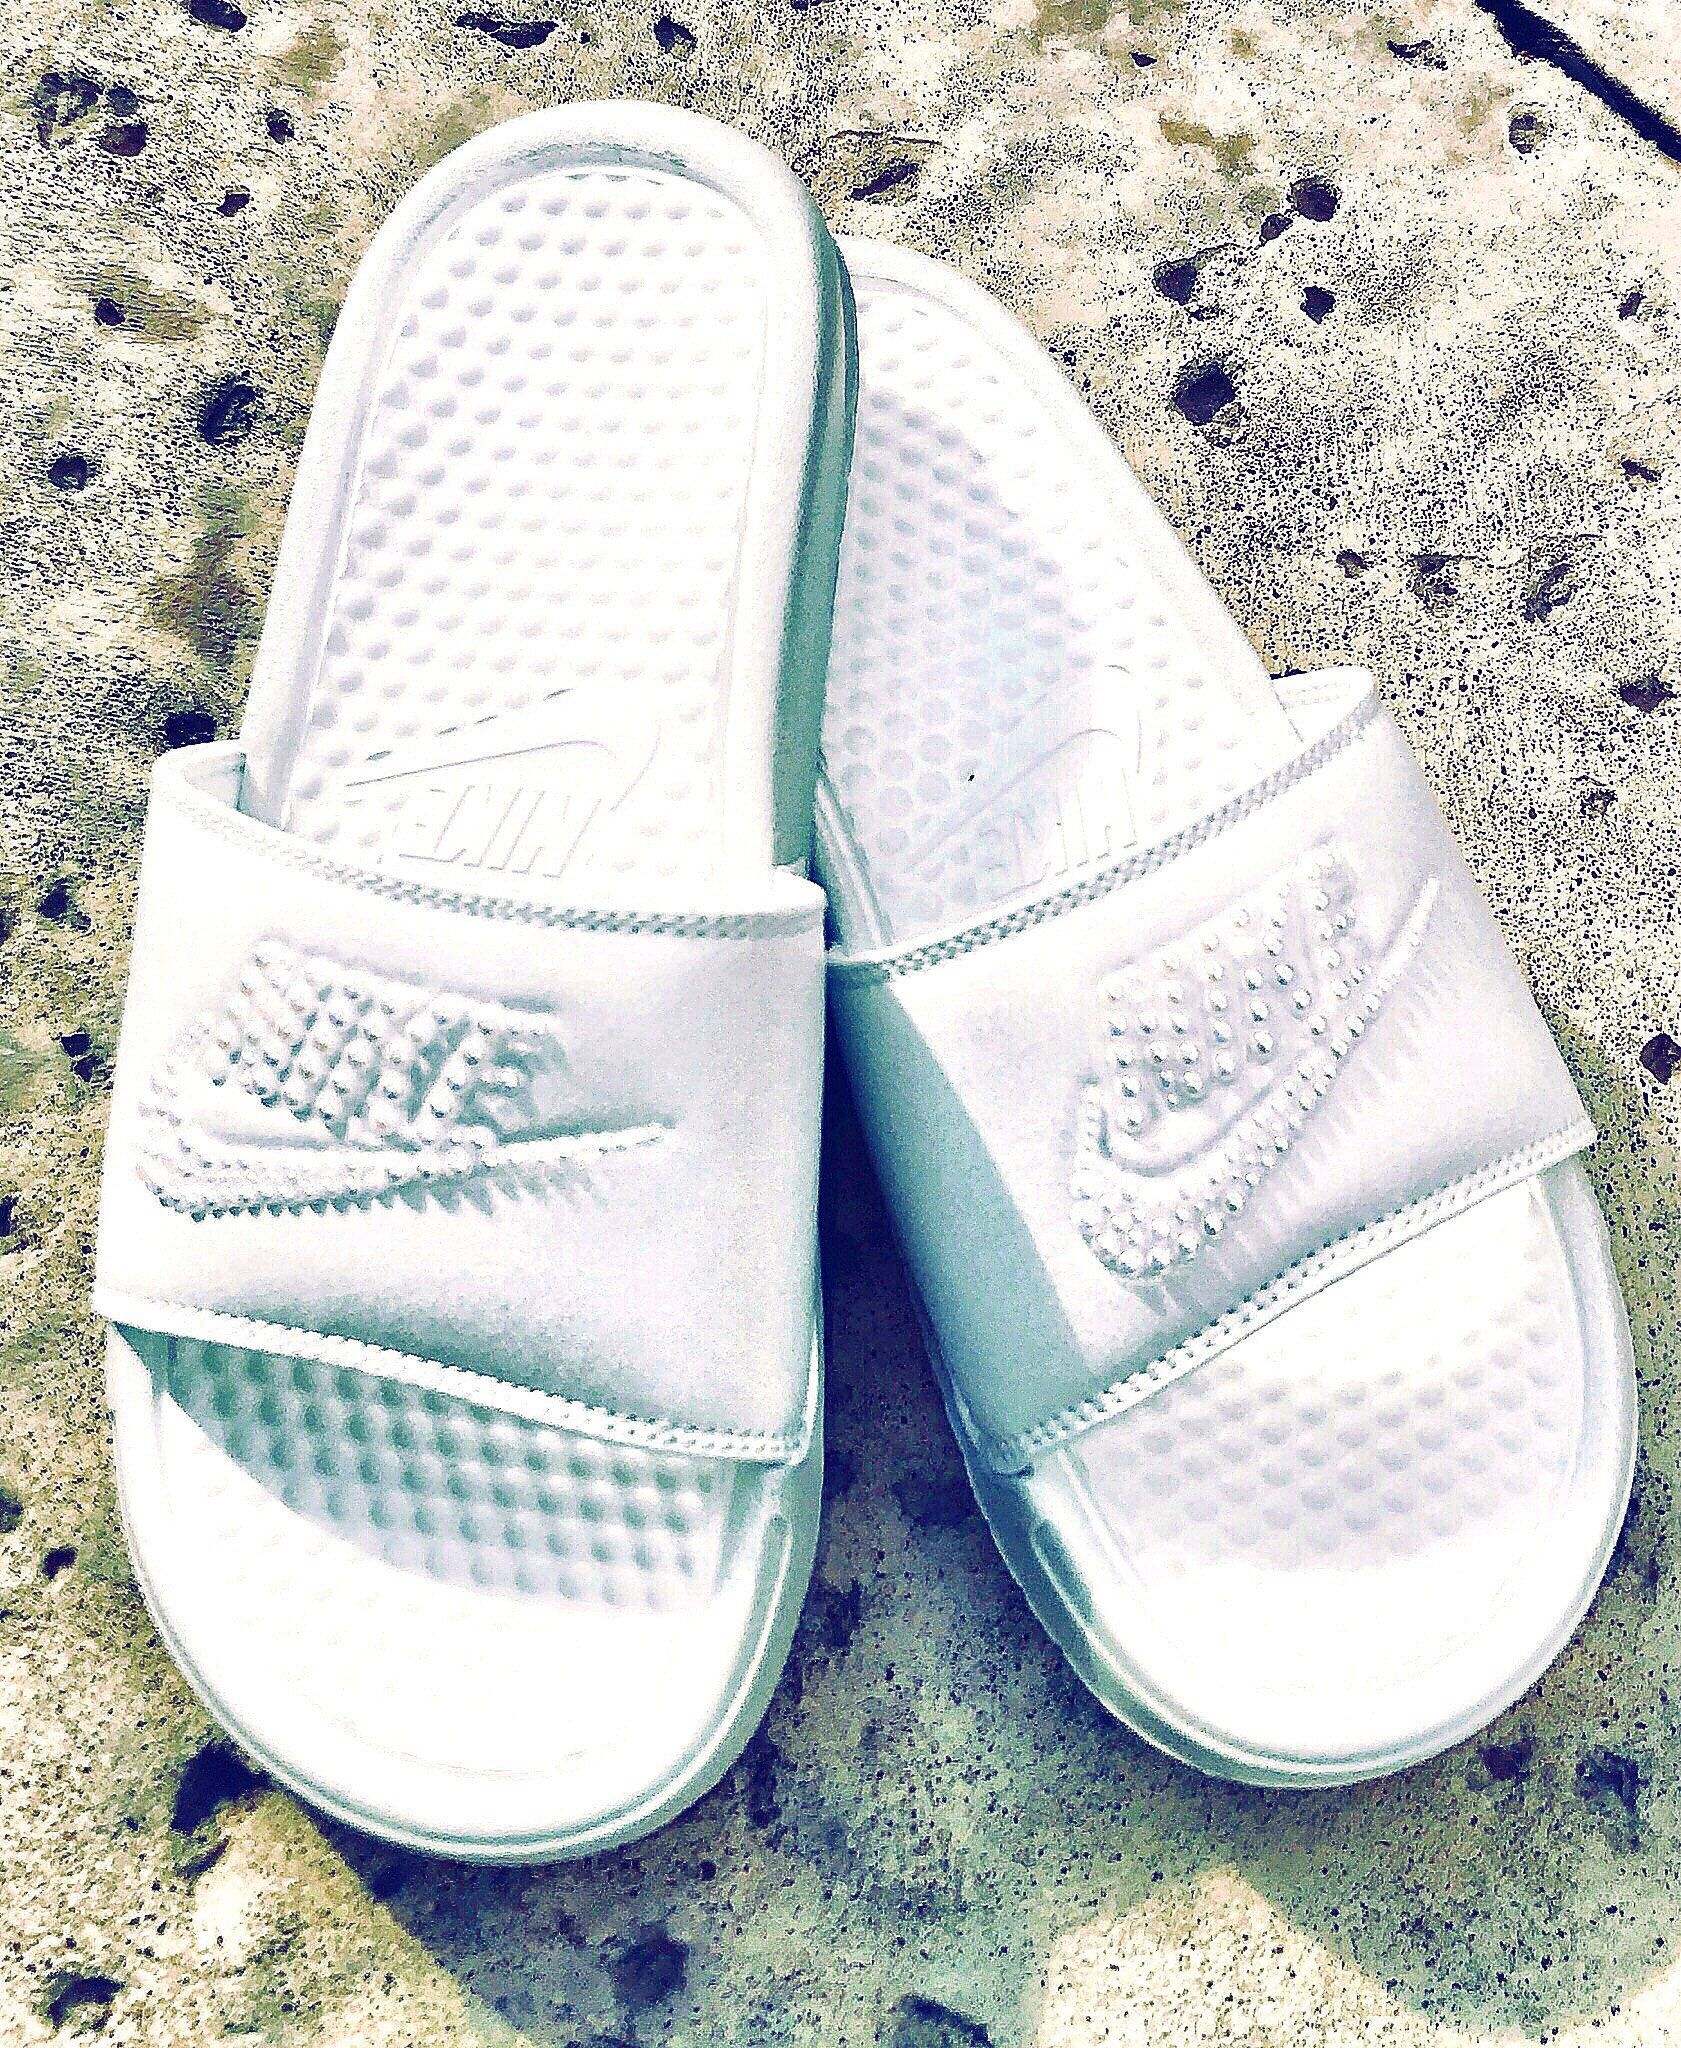 Womens Nike Benassi JDI Slides in White with hand placed Swarovski flatback  pearl details by CrystahhledDesigns 6b9299b62e34